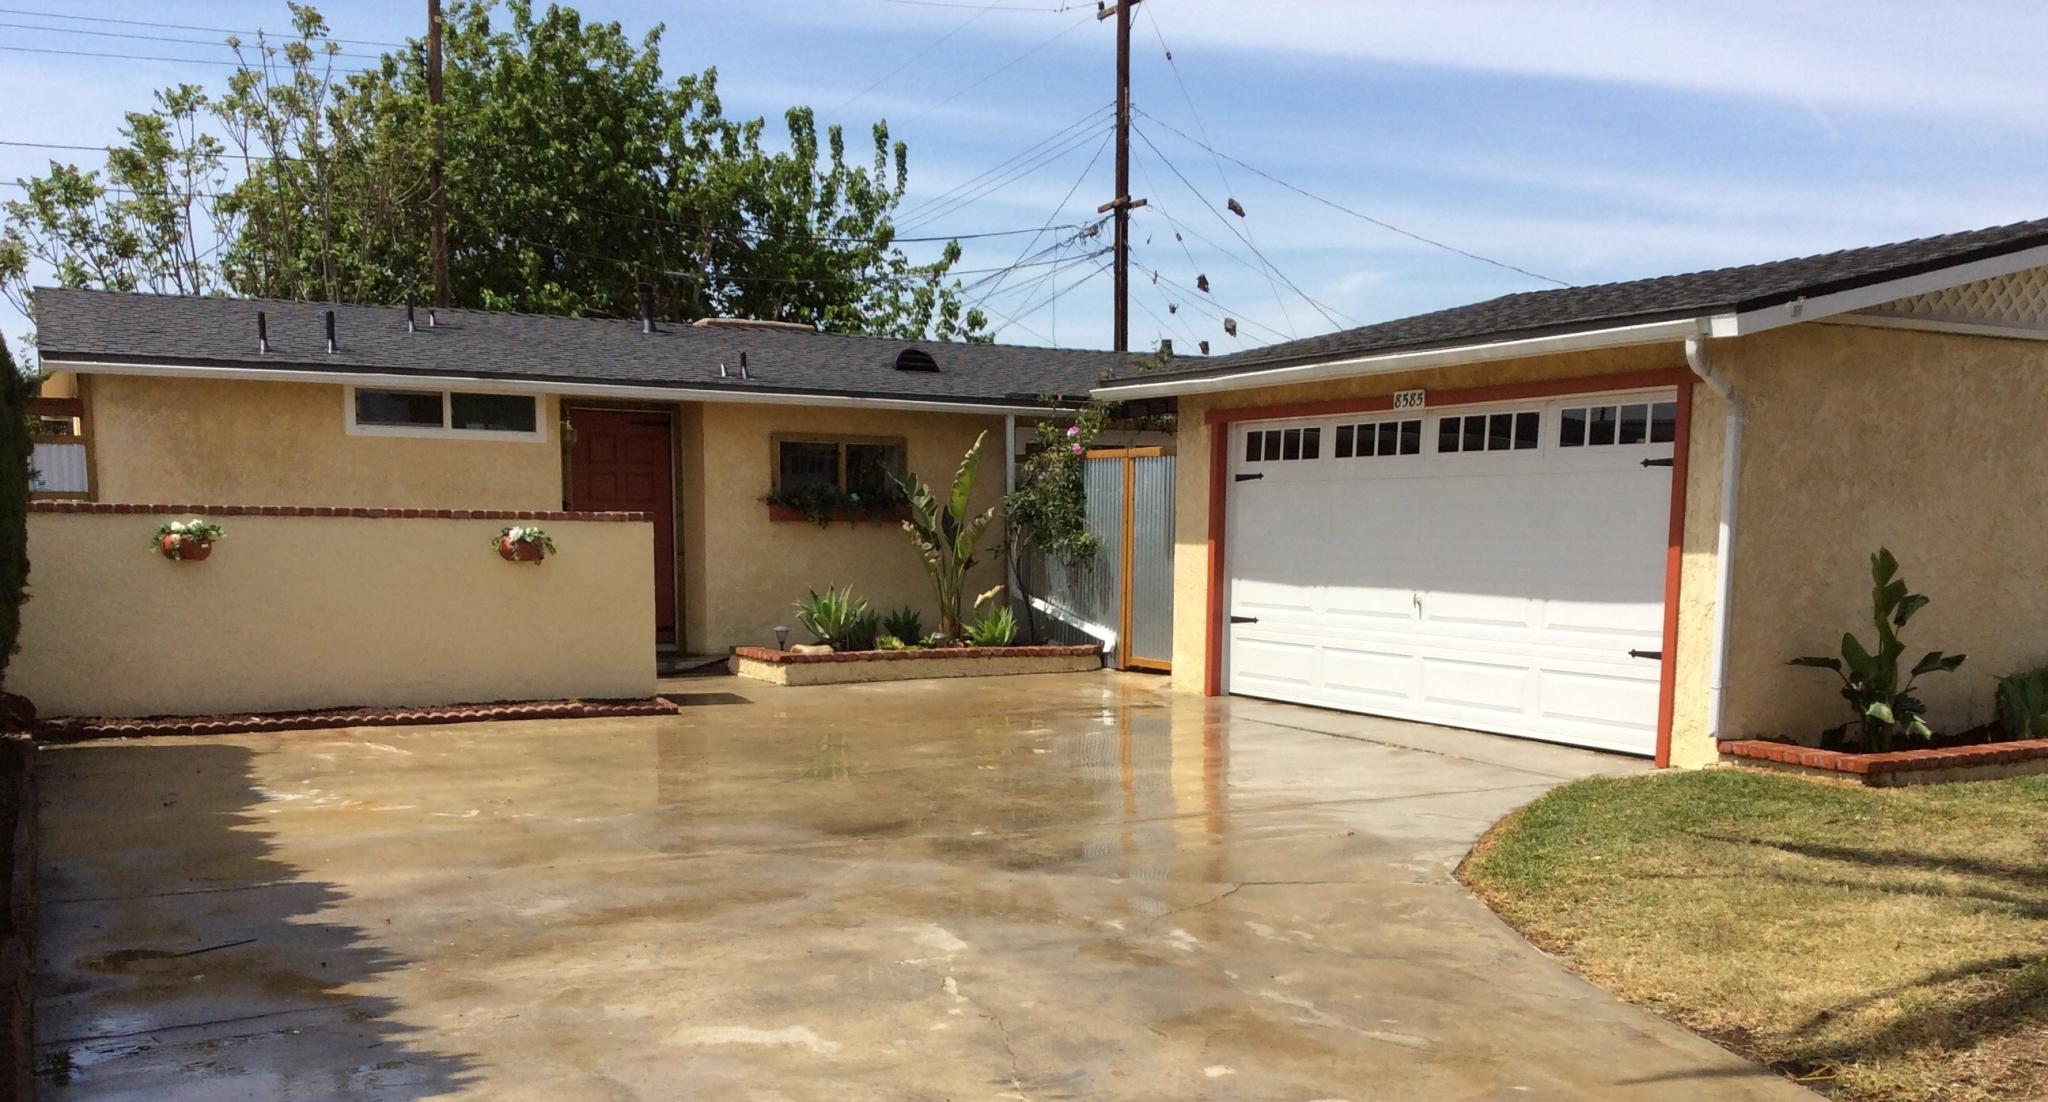 8585 Valley View St, Buena Park, CA 90620 For Rent | Trulia